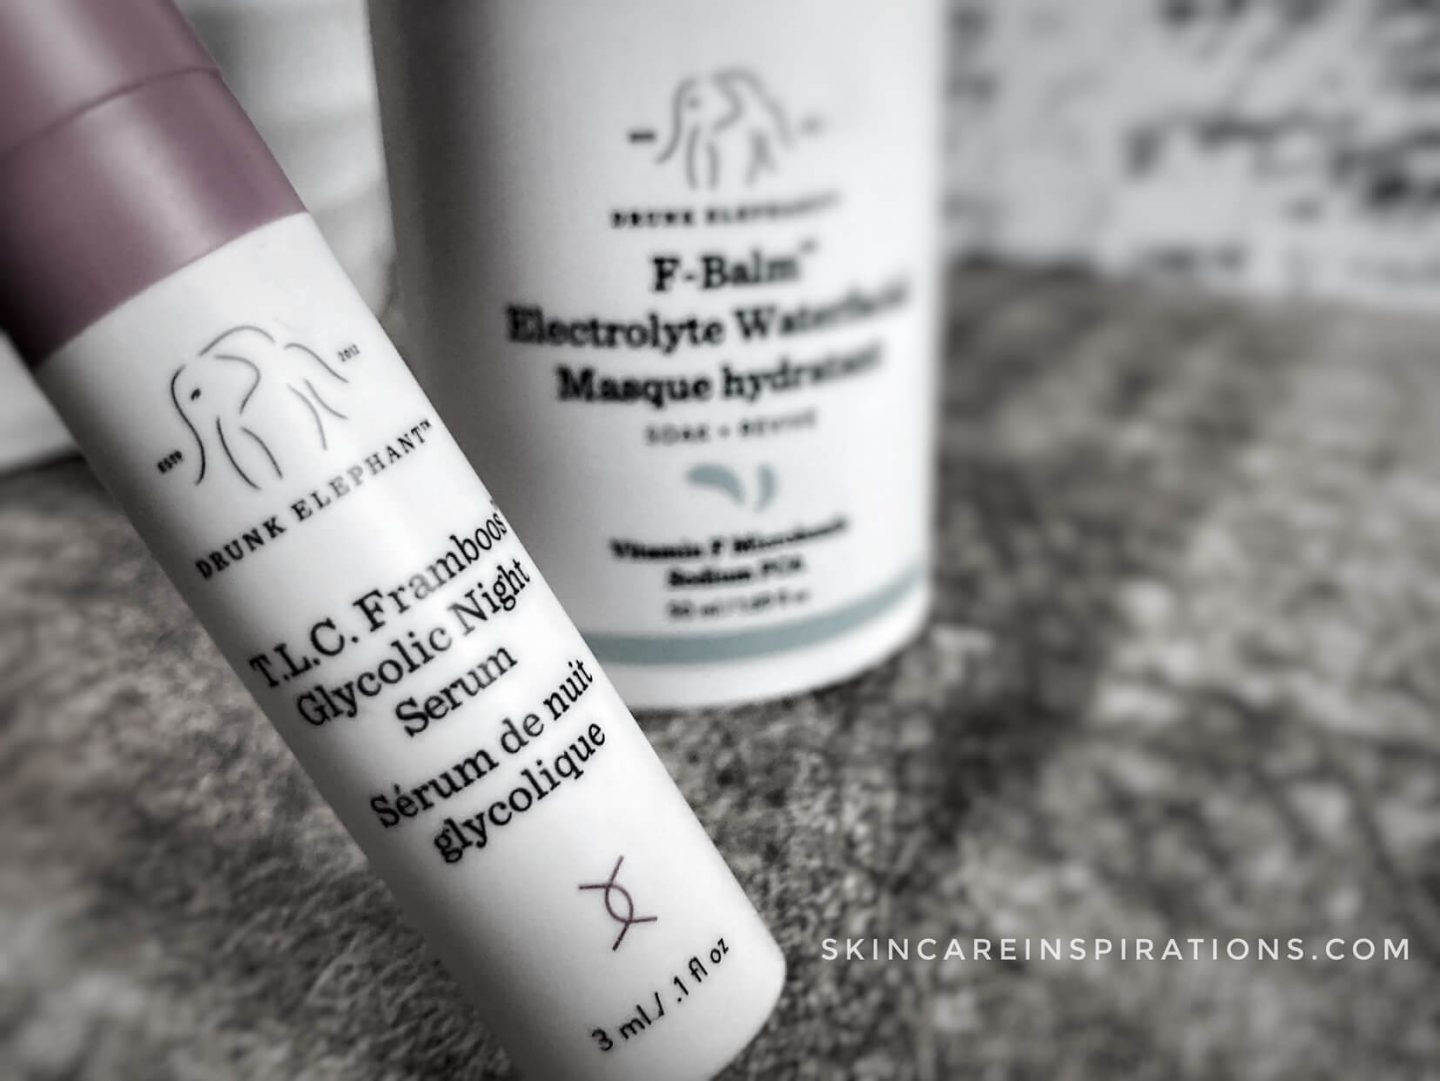 Drunk Elephant 1% retinol Serum